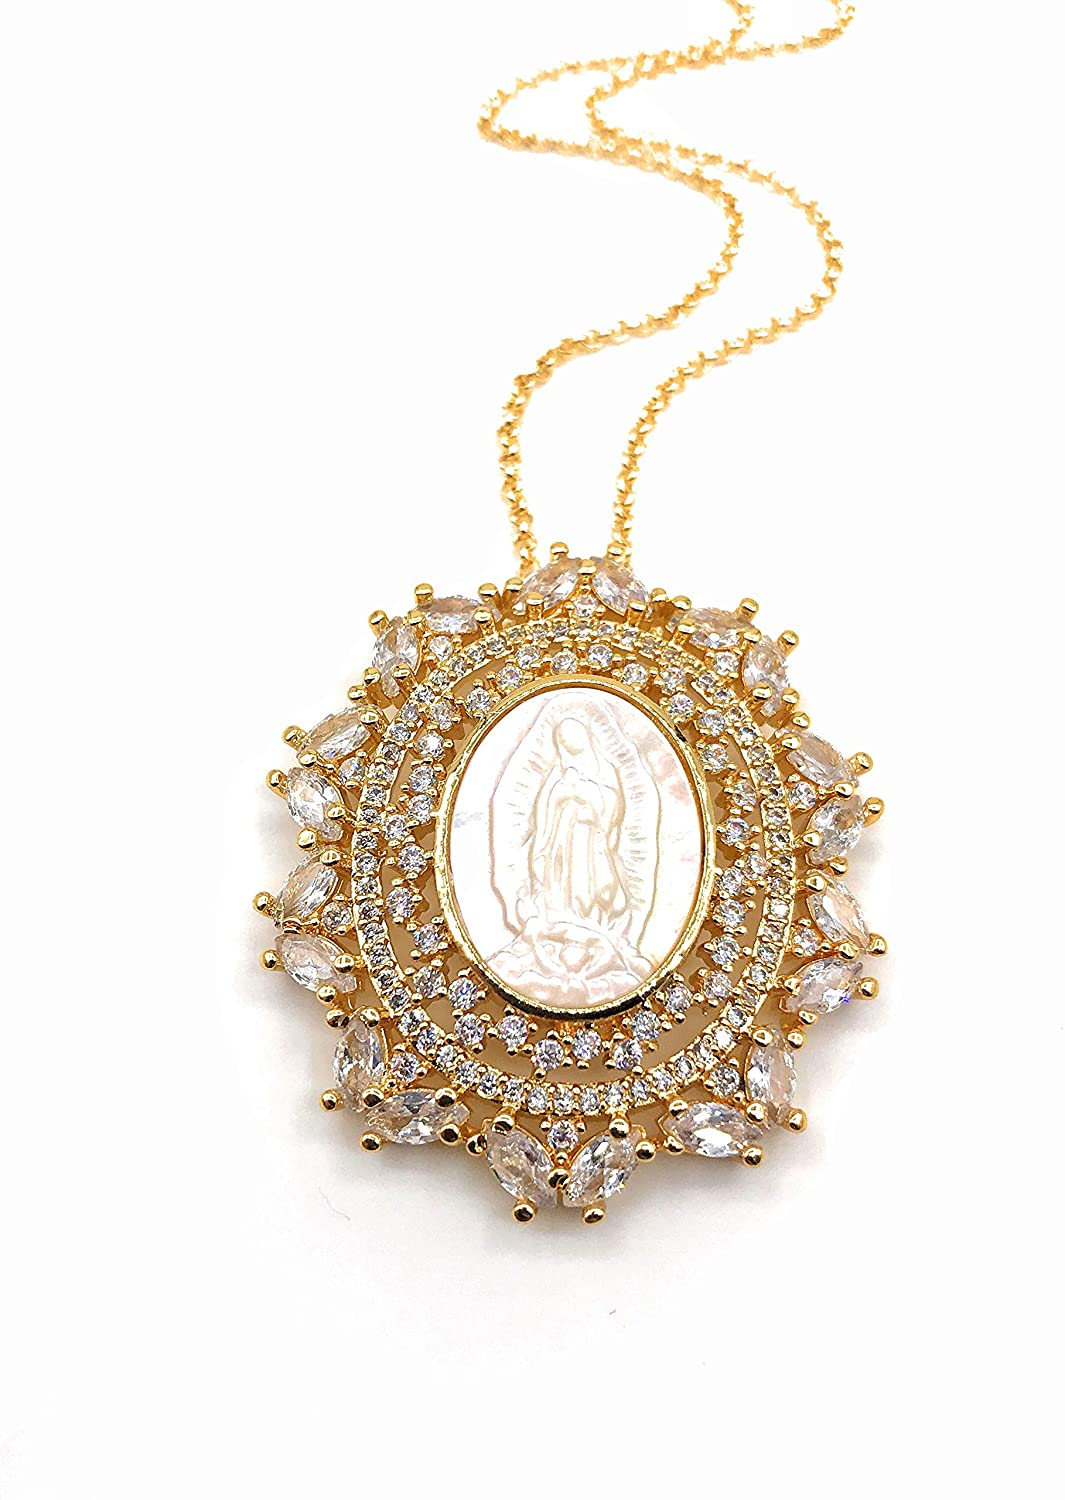 Mother of Pearl Guadalupe Medal Necklace 18K Gold Plated Chain 18